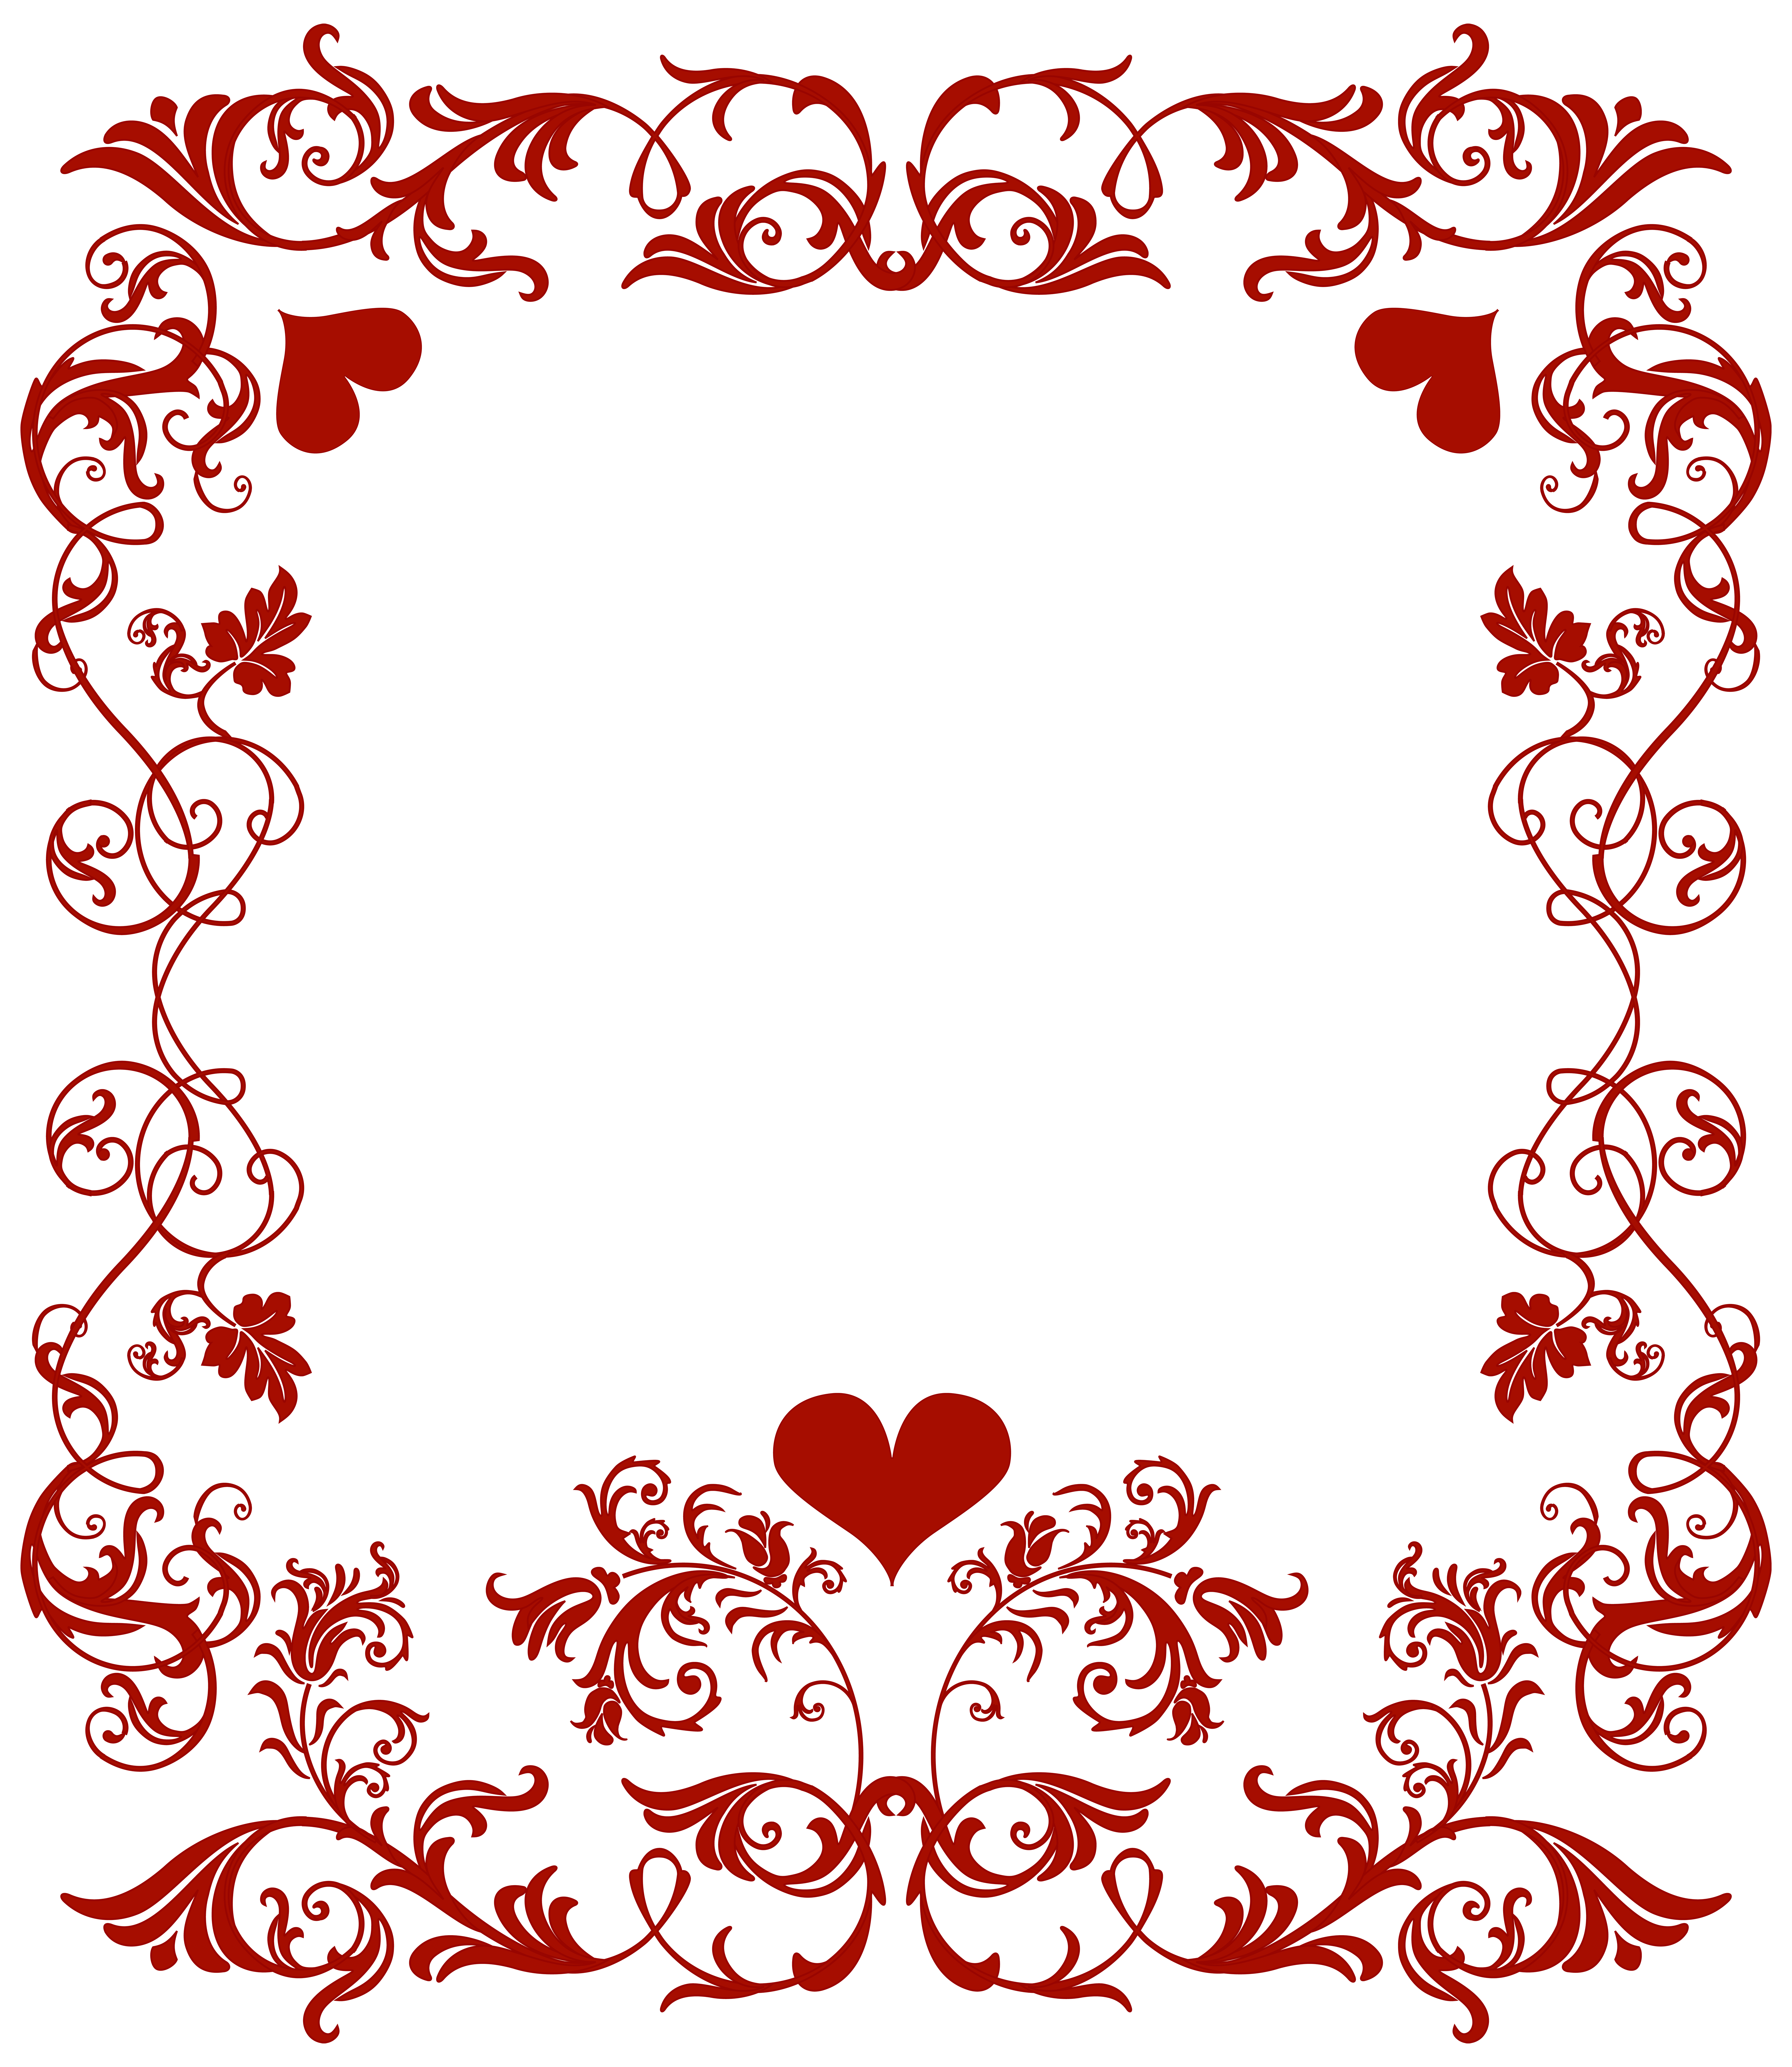 valentines day clipart transparent